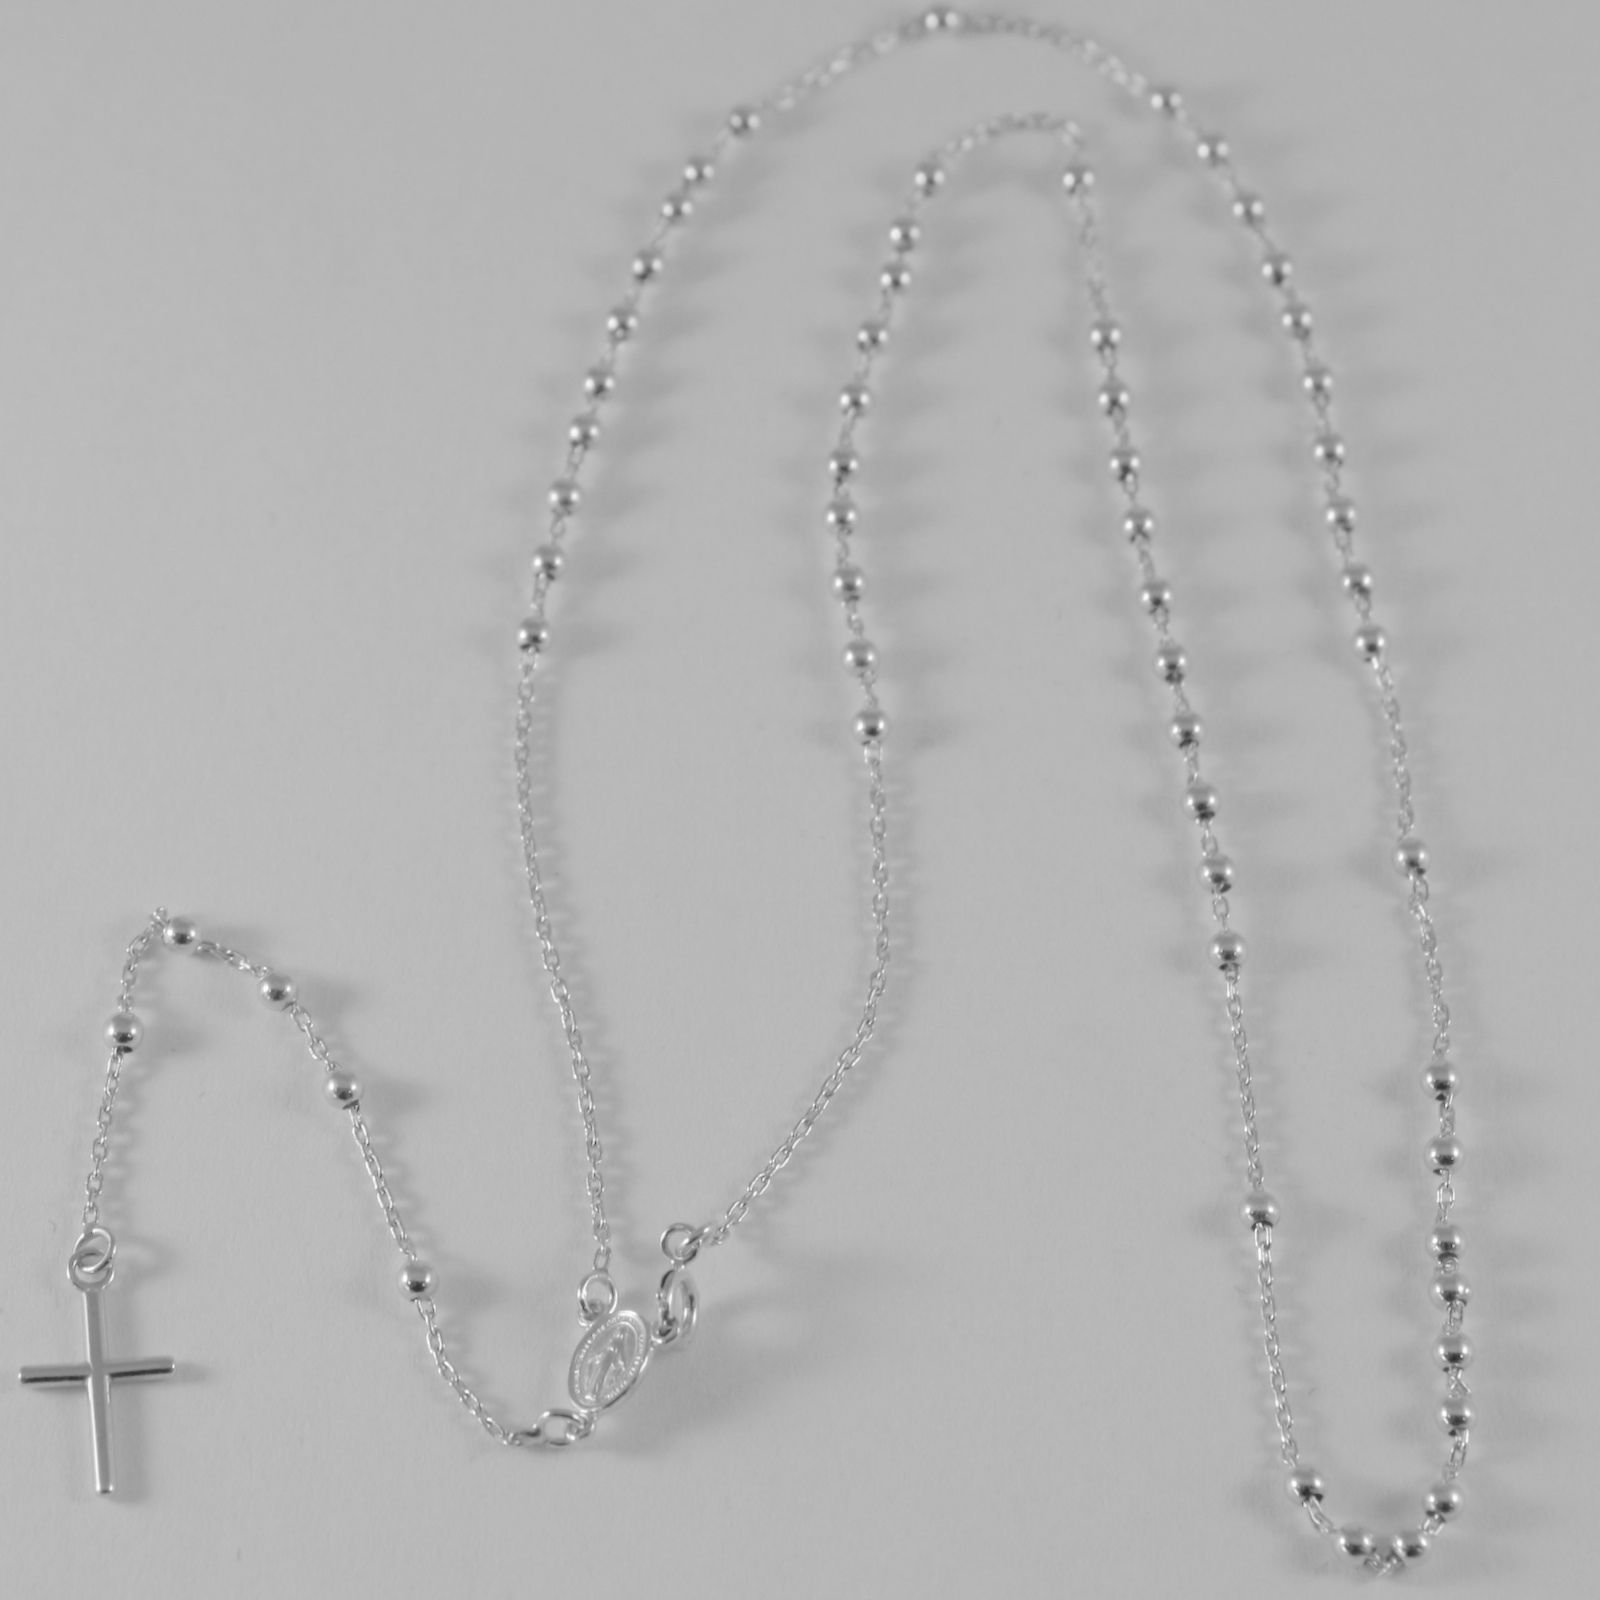 18K WHITE GOLD ROSARY NECKLACE MIRACULOUS MEDAL CROSS PENDANT JESUS ITALY MADE